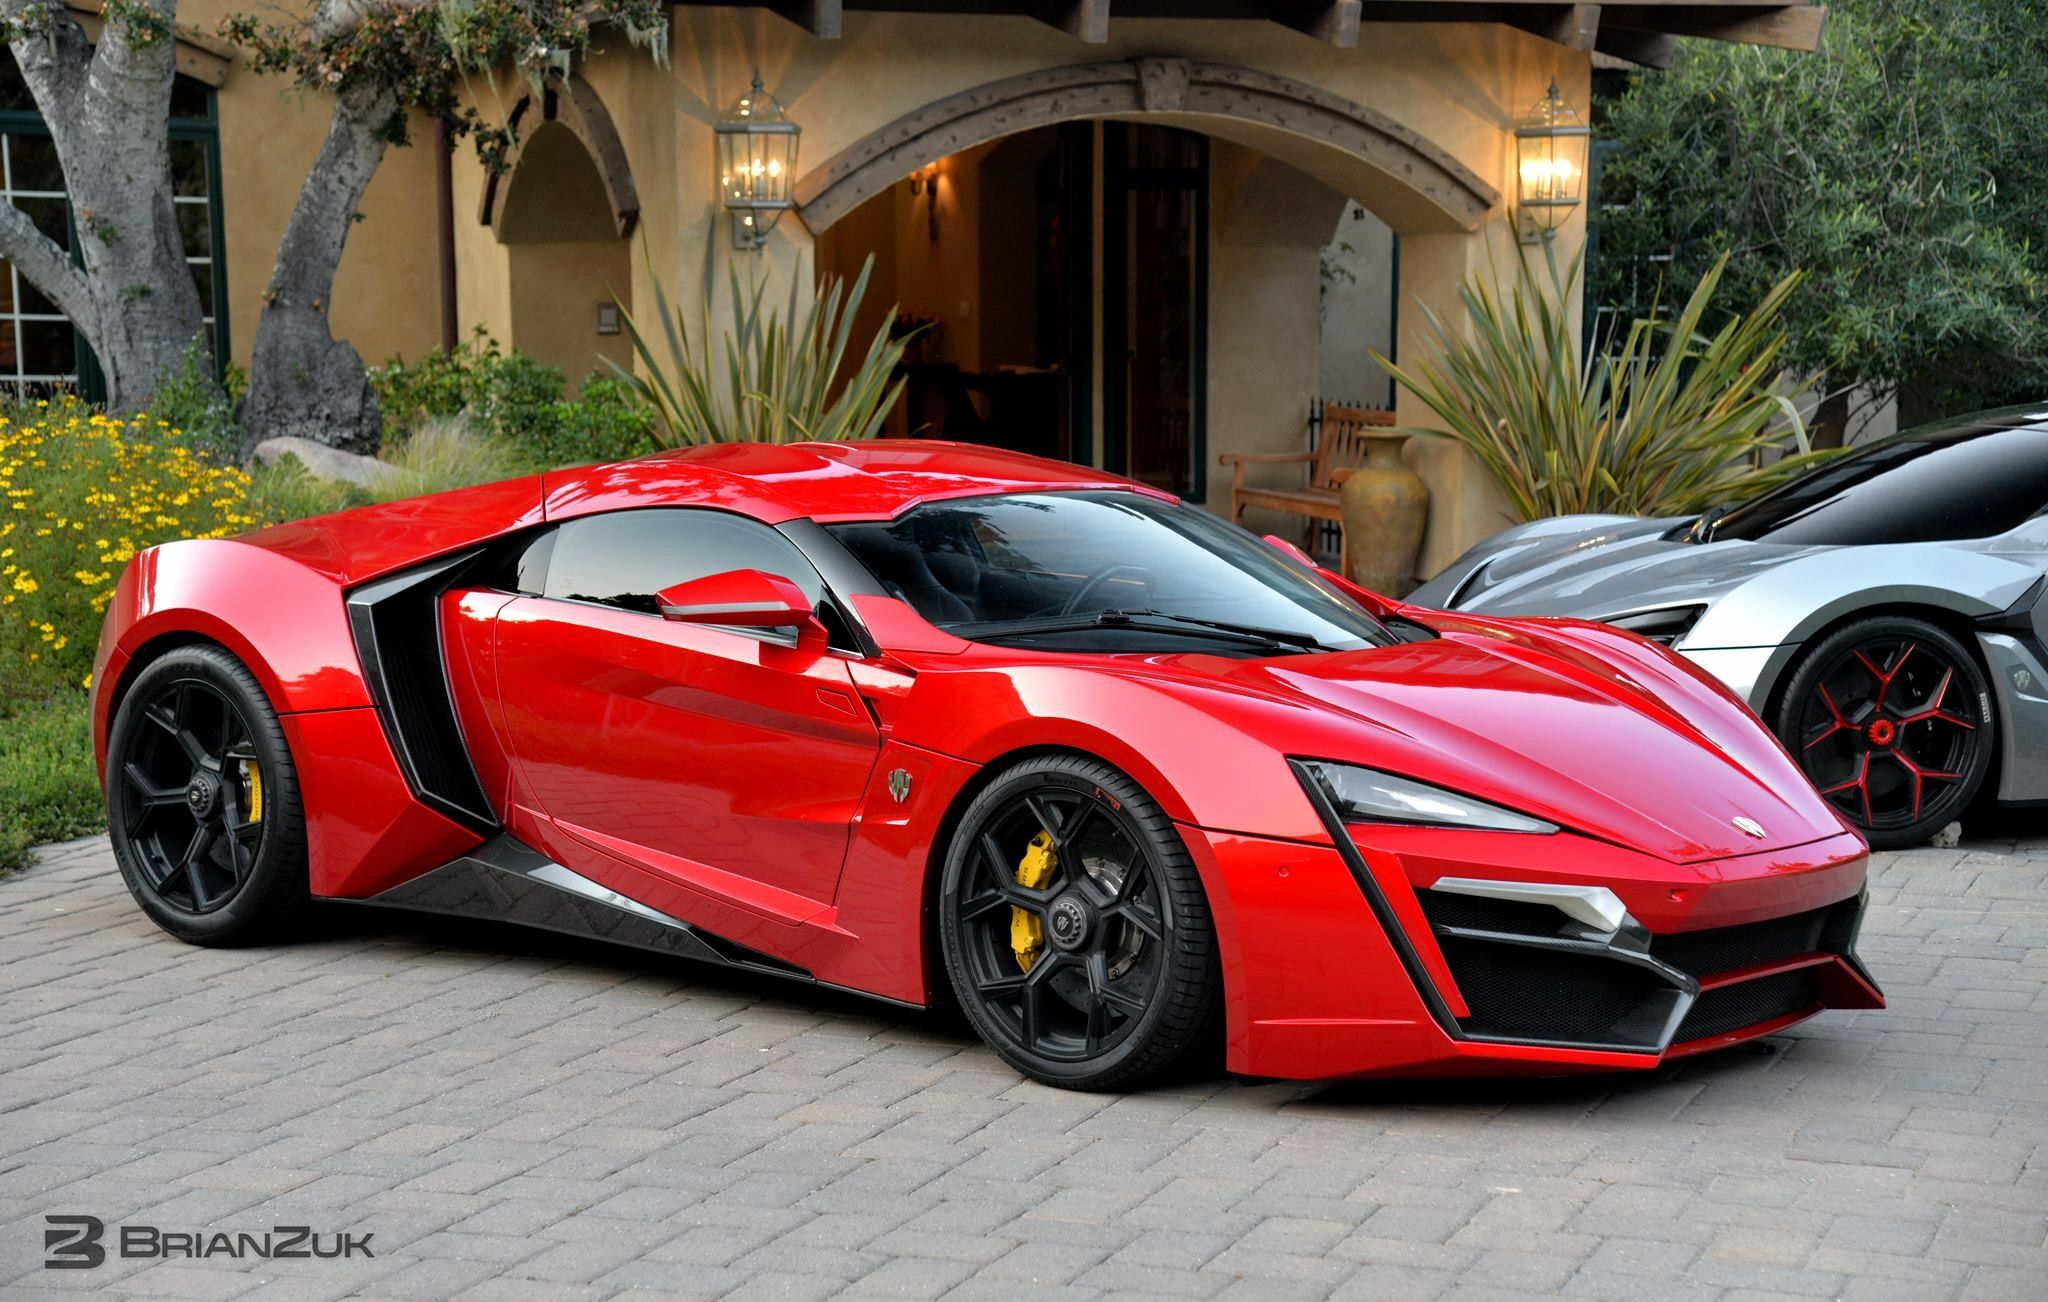 Audi Car Logo Wallpapers Lykan Hypersport 24 Karat Gold Stitching Jewels In The